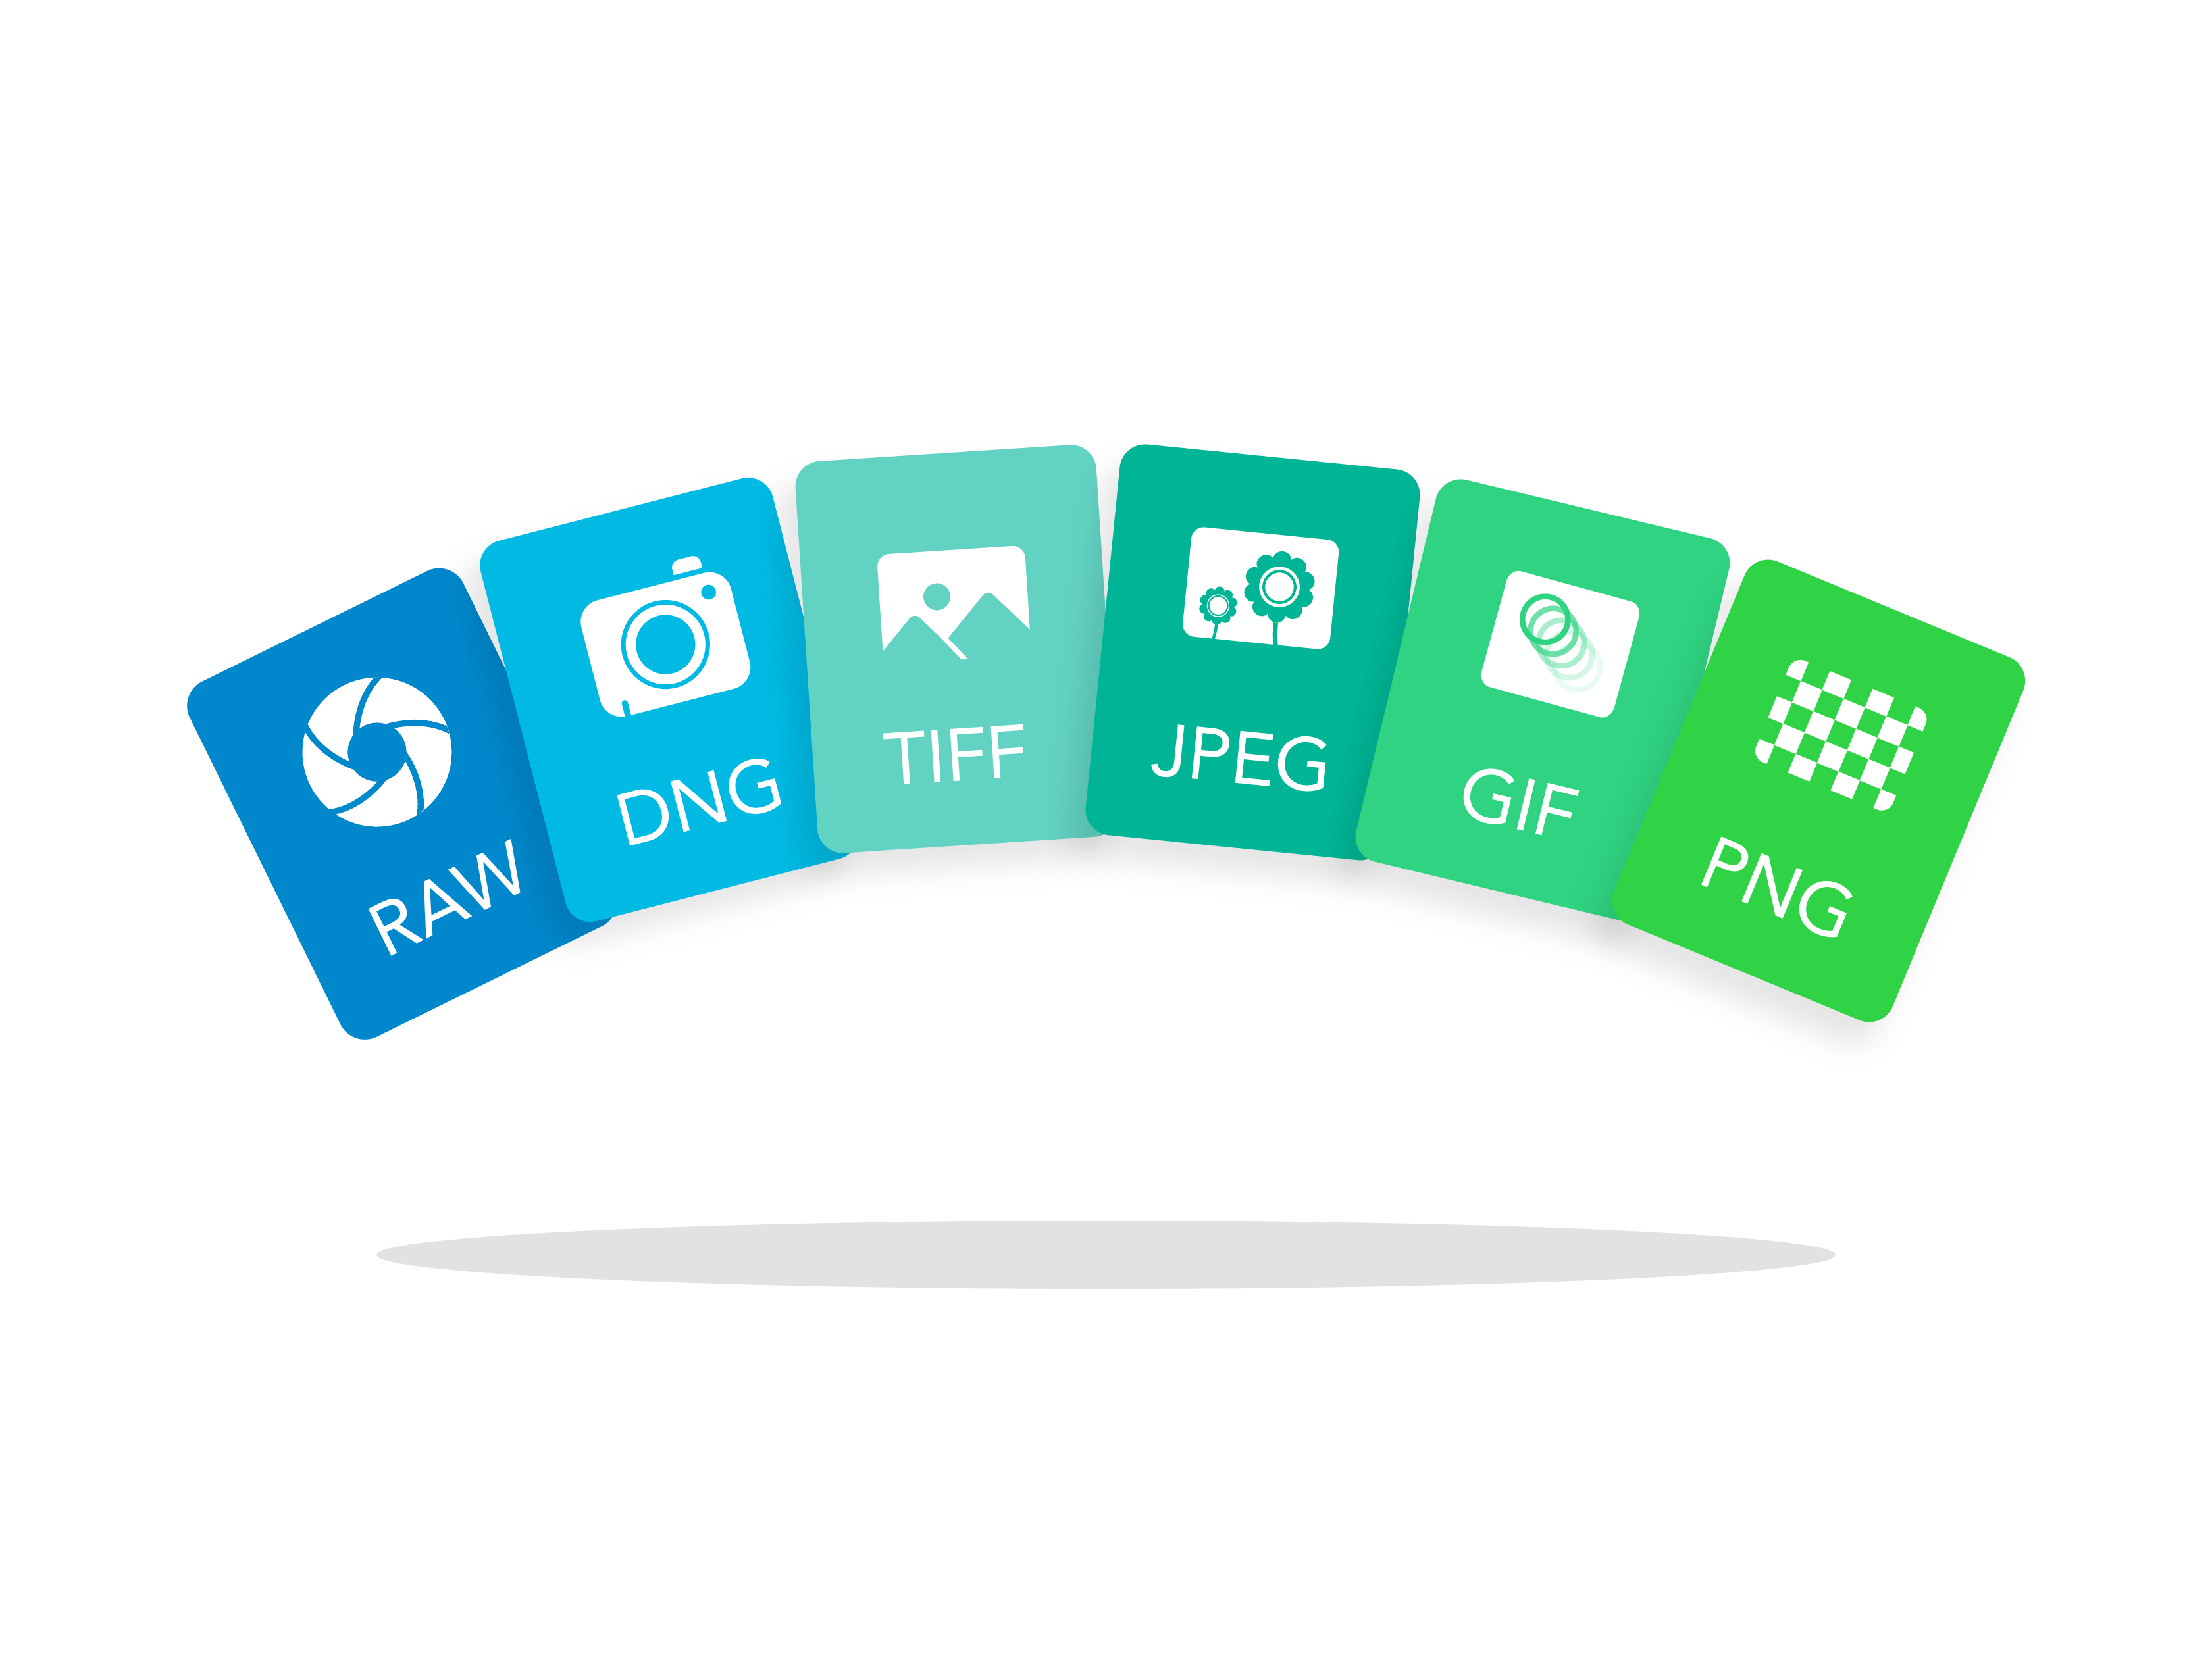 Image File Formats: Difference Between RAW, DNG, TIFF, GIF, PNG, and.